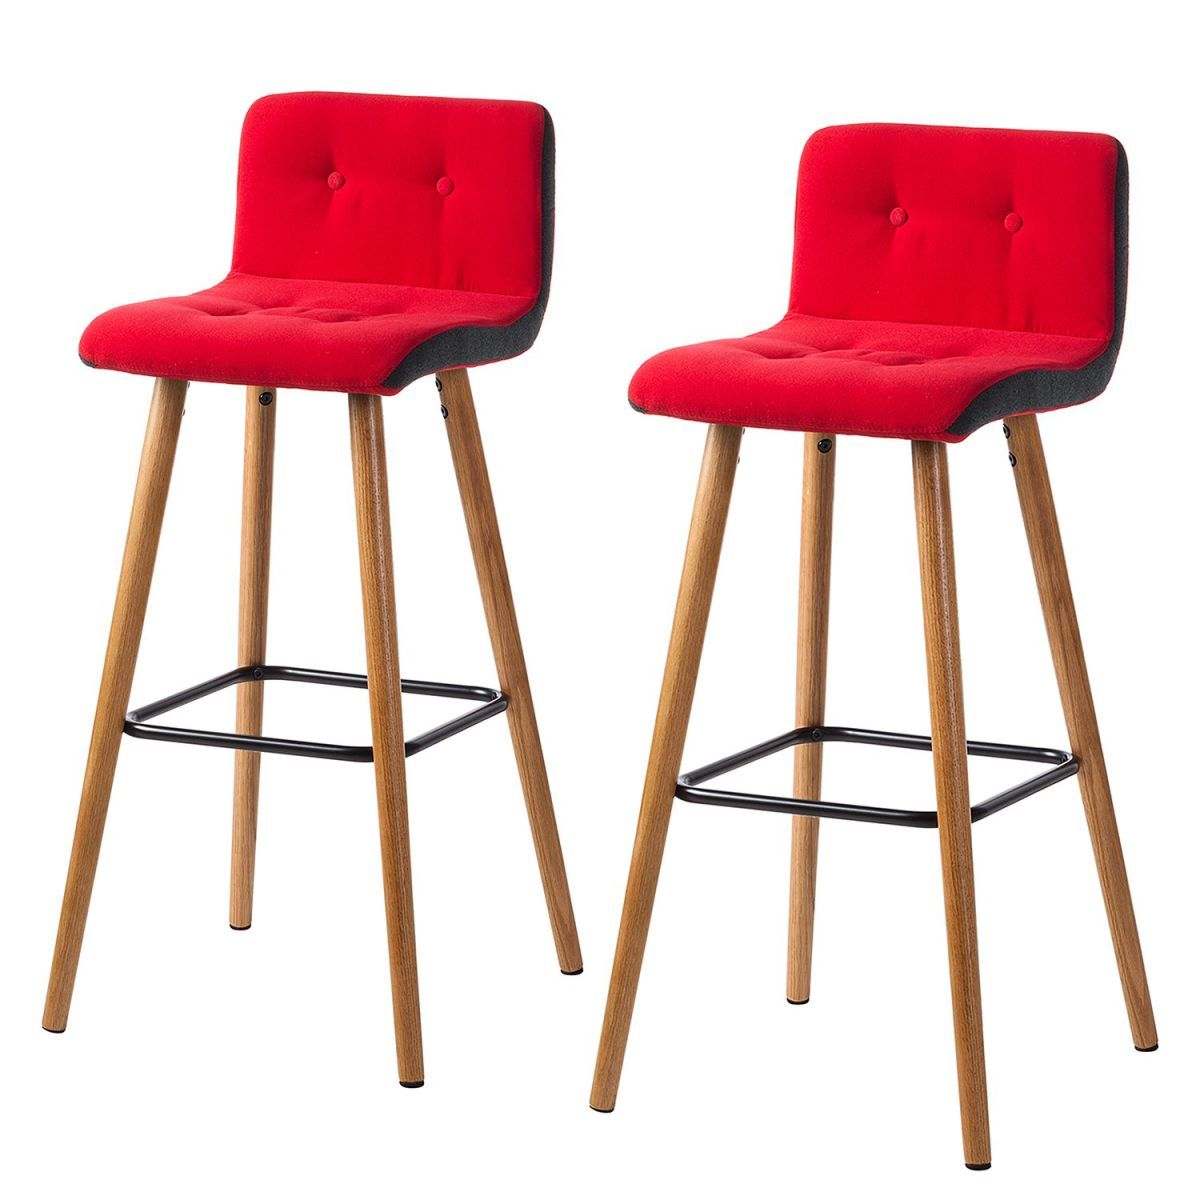 Barhocker Troon (2er-Set) - Eiche massiv / Webstoff - Rot ...